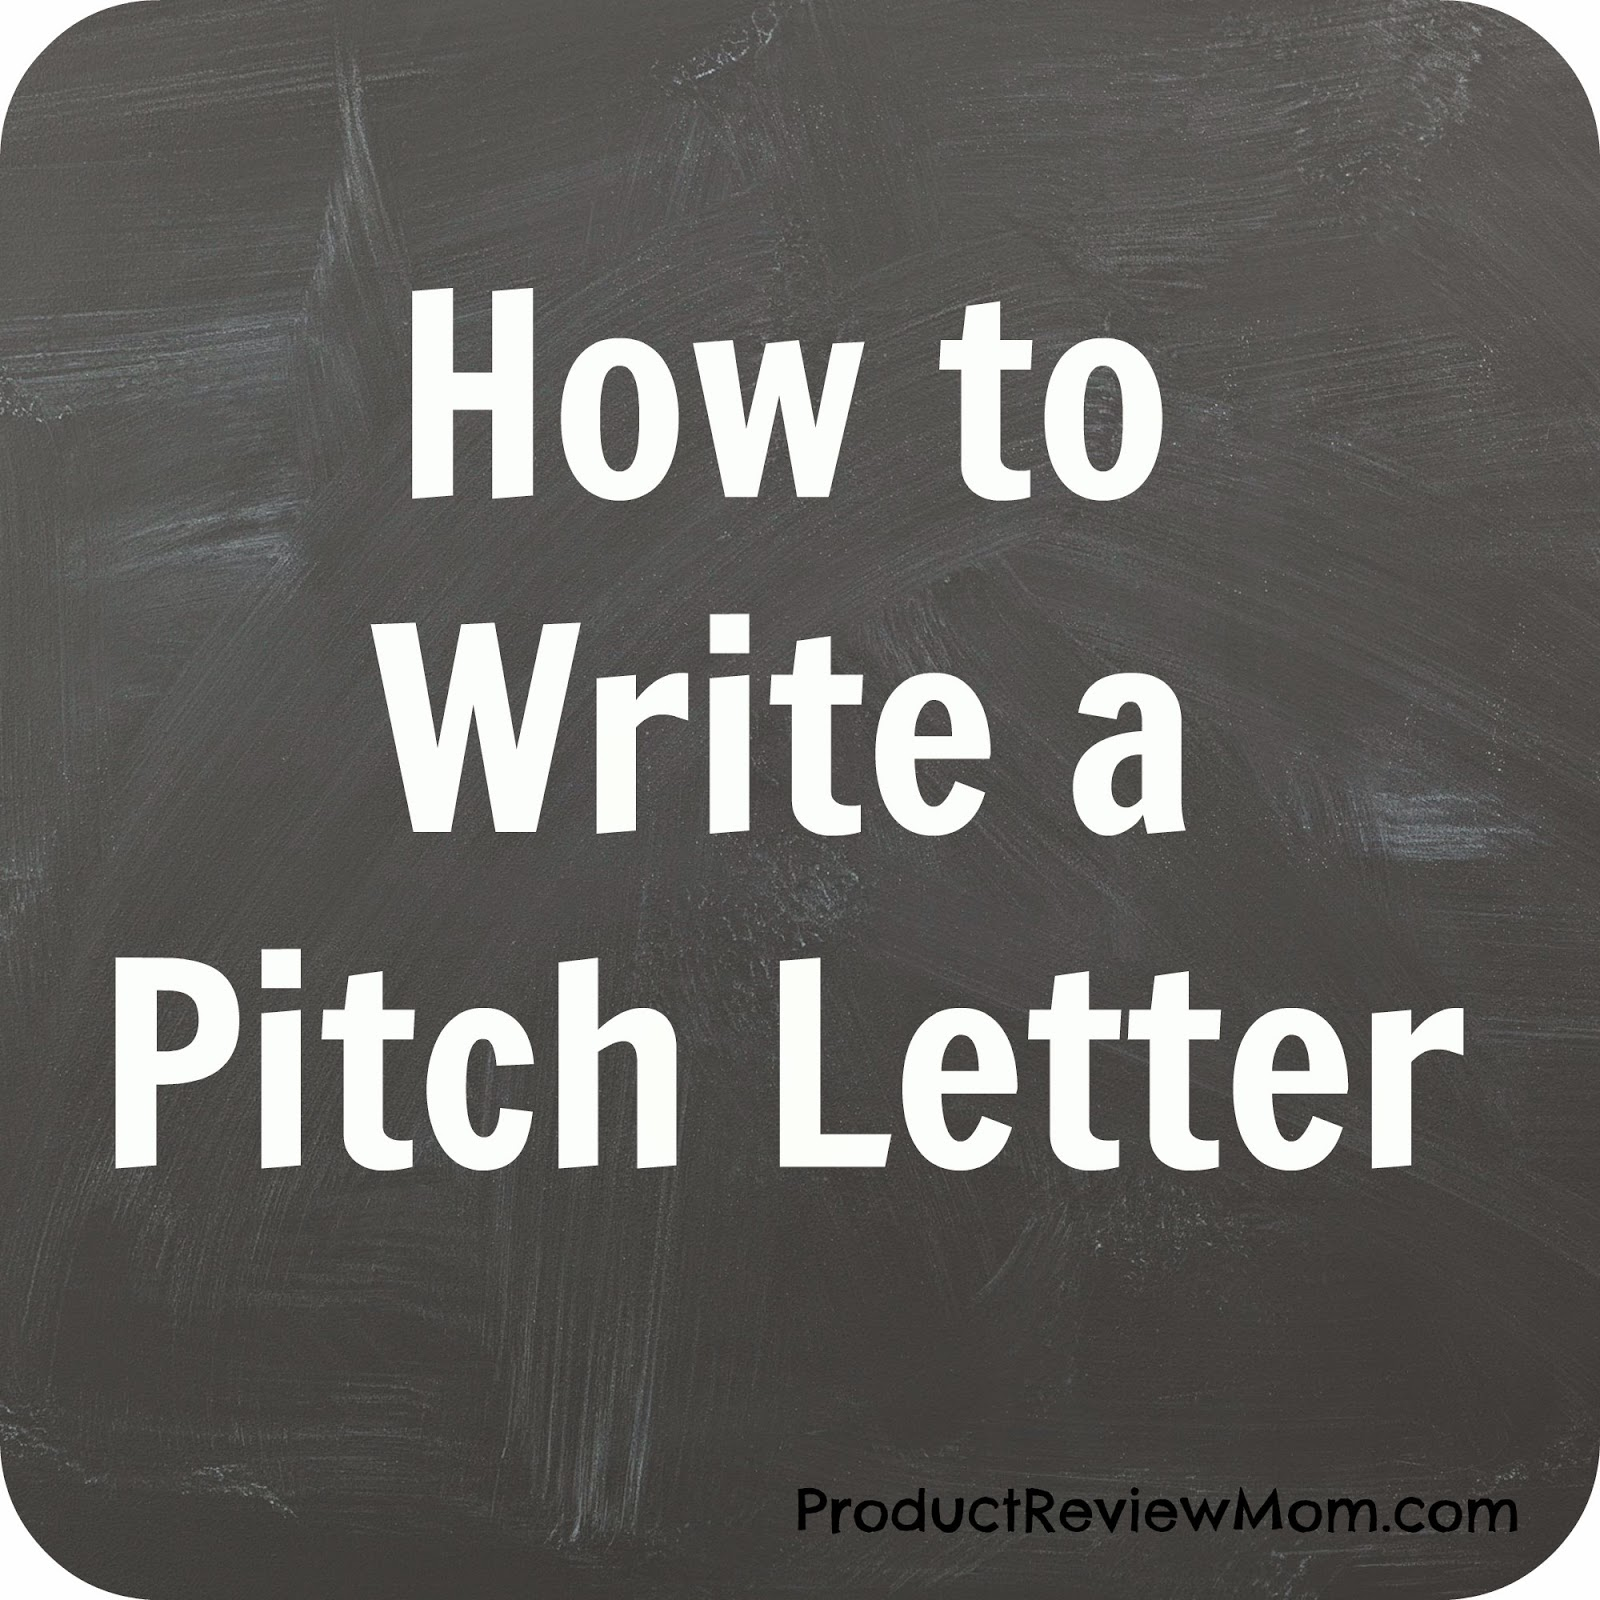 How to Write a Pitch Letter  via www.productreviewmom.com